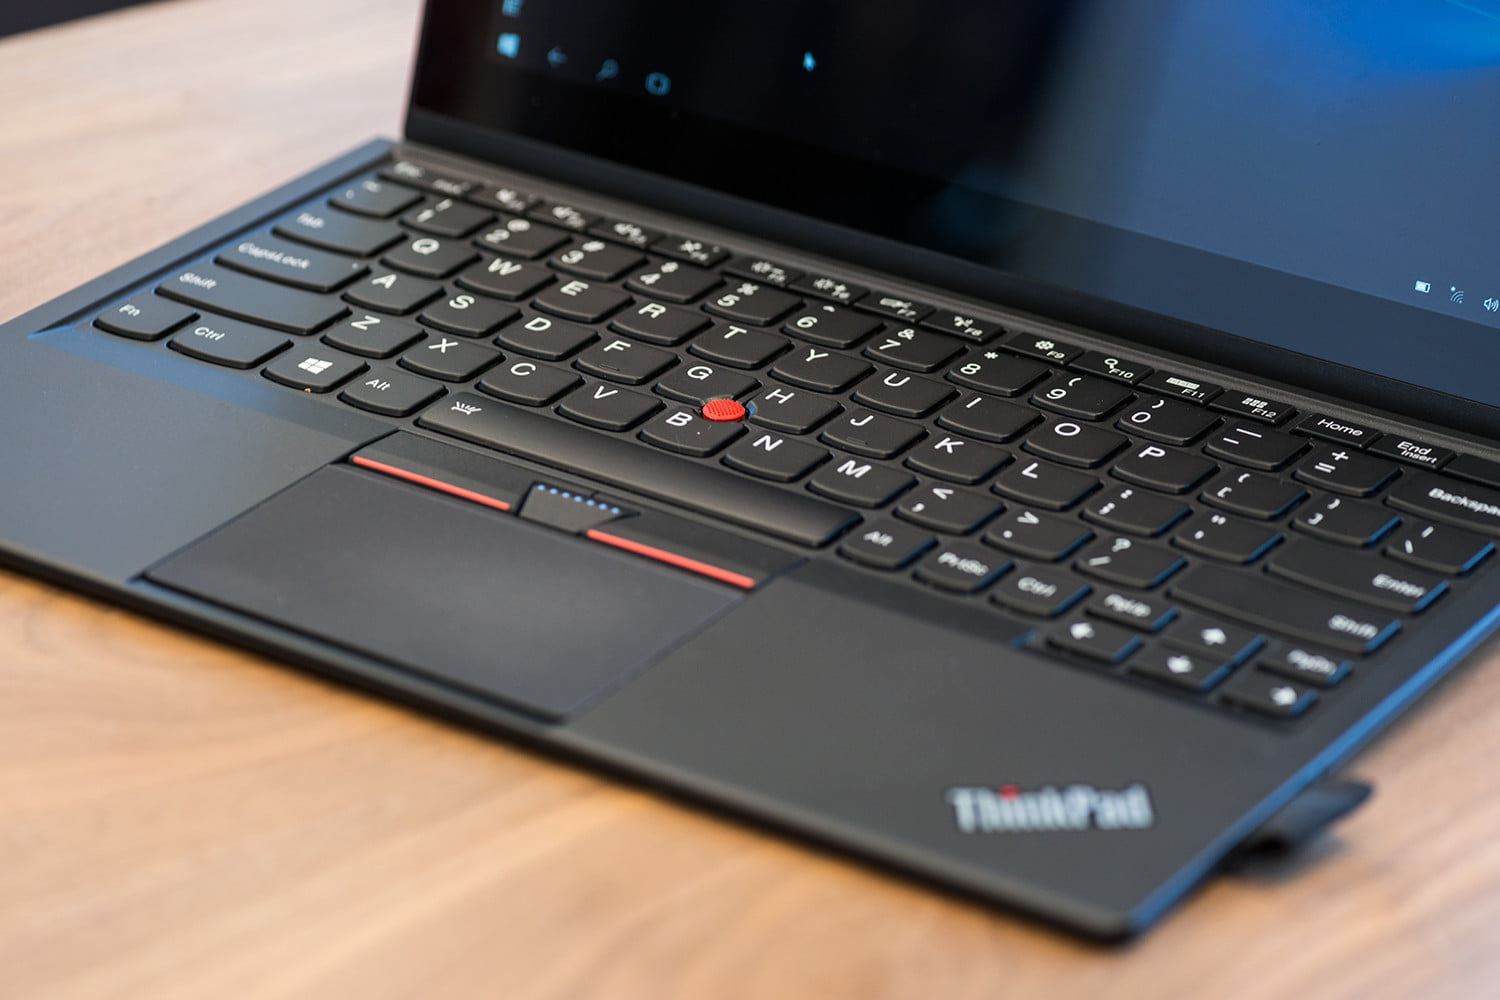 Lenovo's Yoga pushes the limits of premium 2-in-1s, thanks to its nearly bezel-free display, speedy 7th-gen Intel CPU and more than 10 hours of battery life.